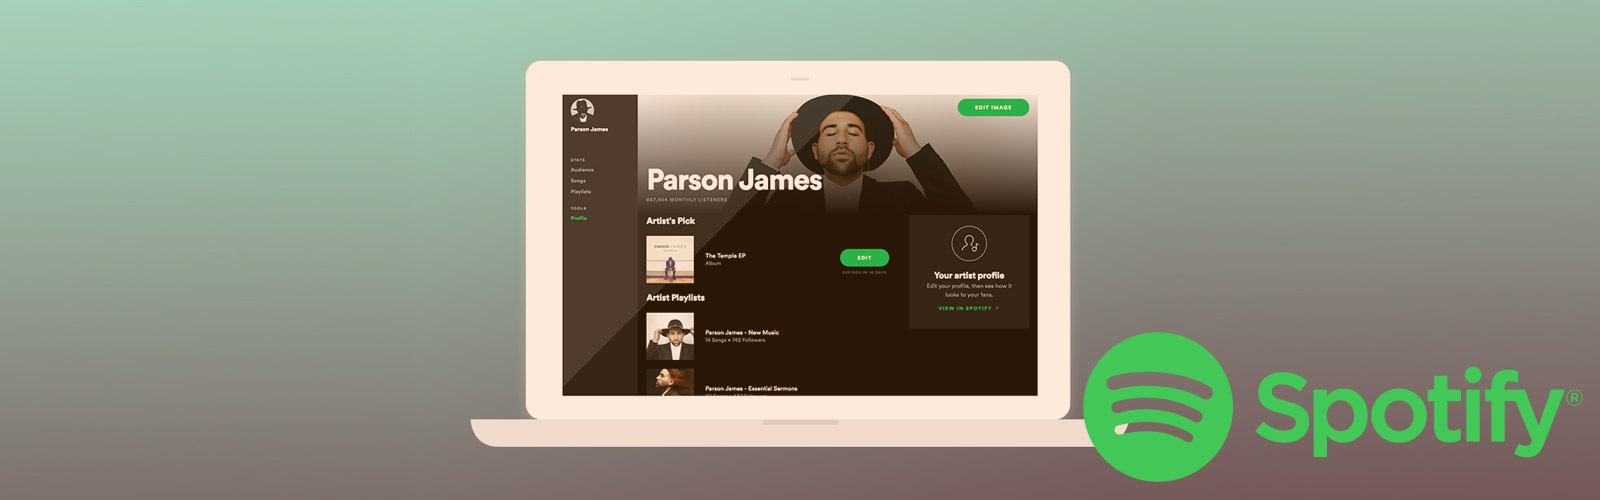 Spotify Best Practices: How to get your music into Spotify playlists (Part 2)